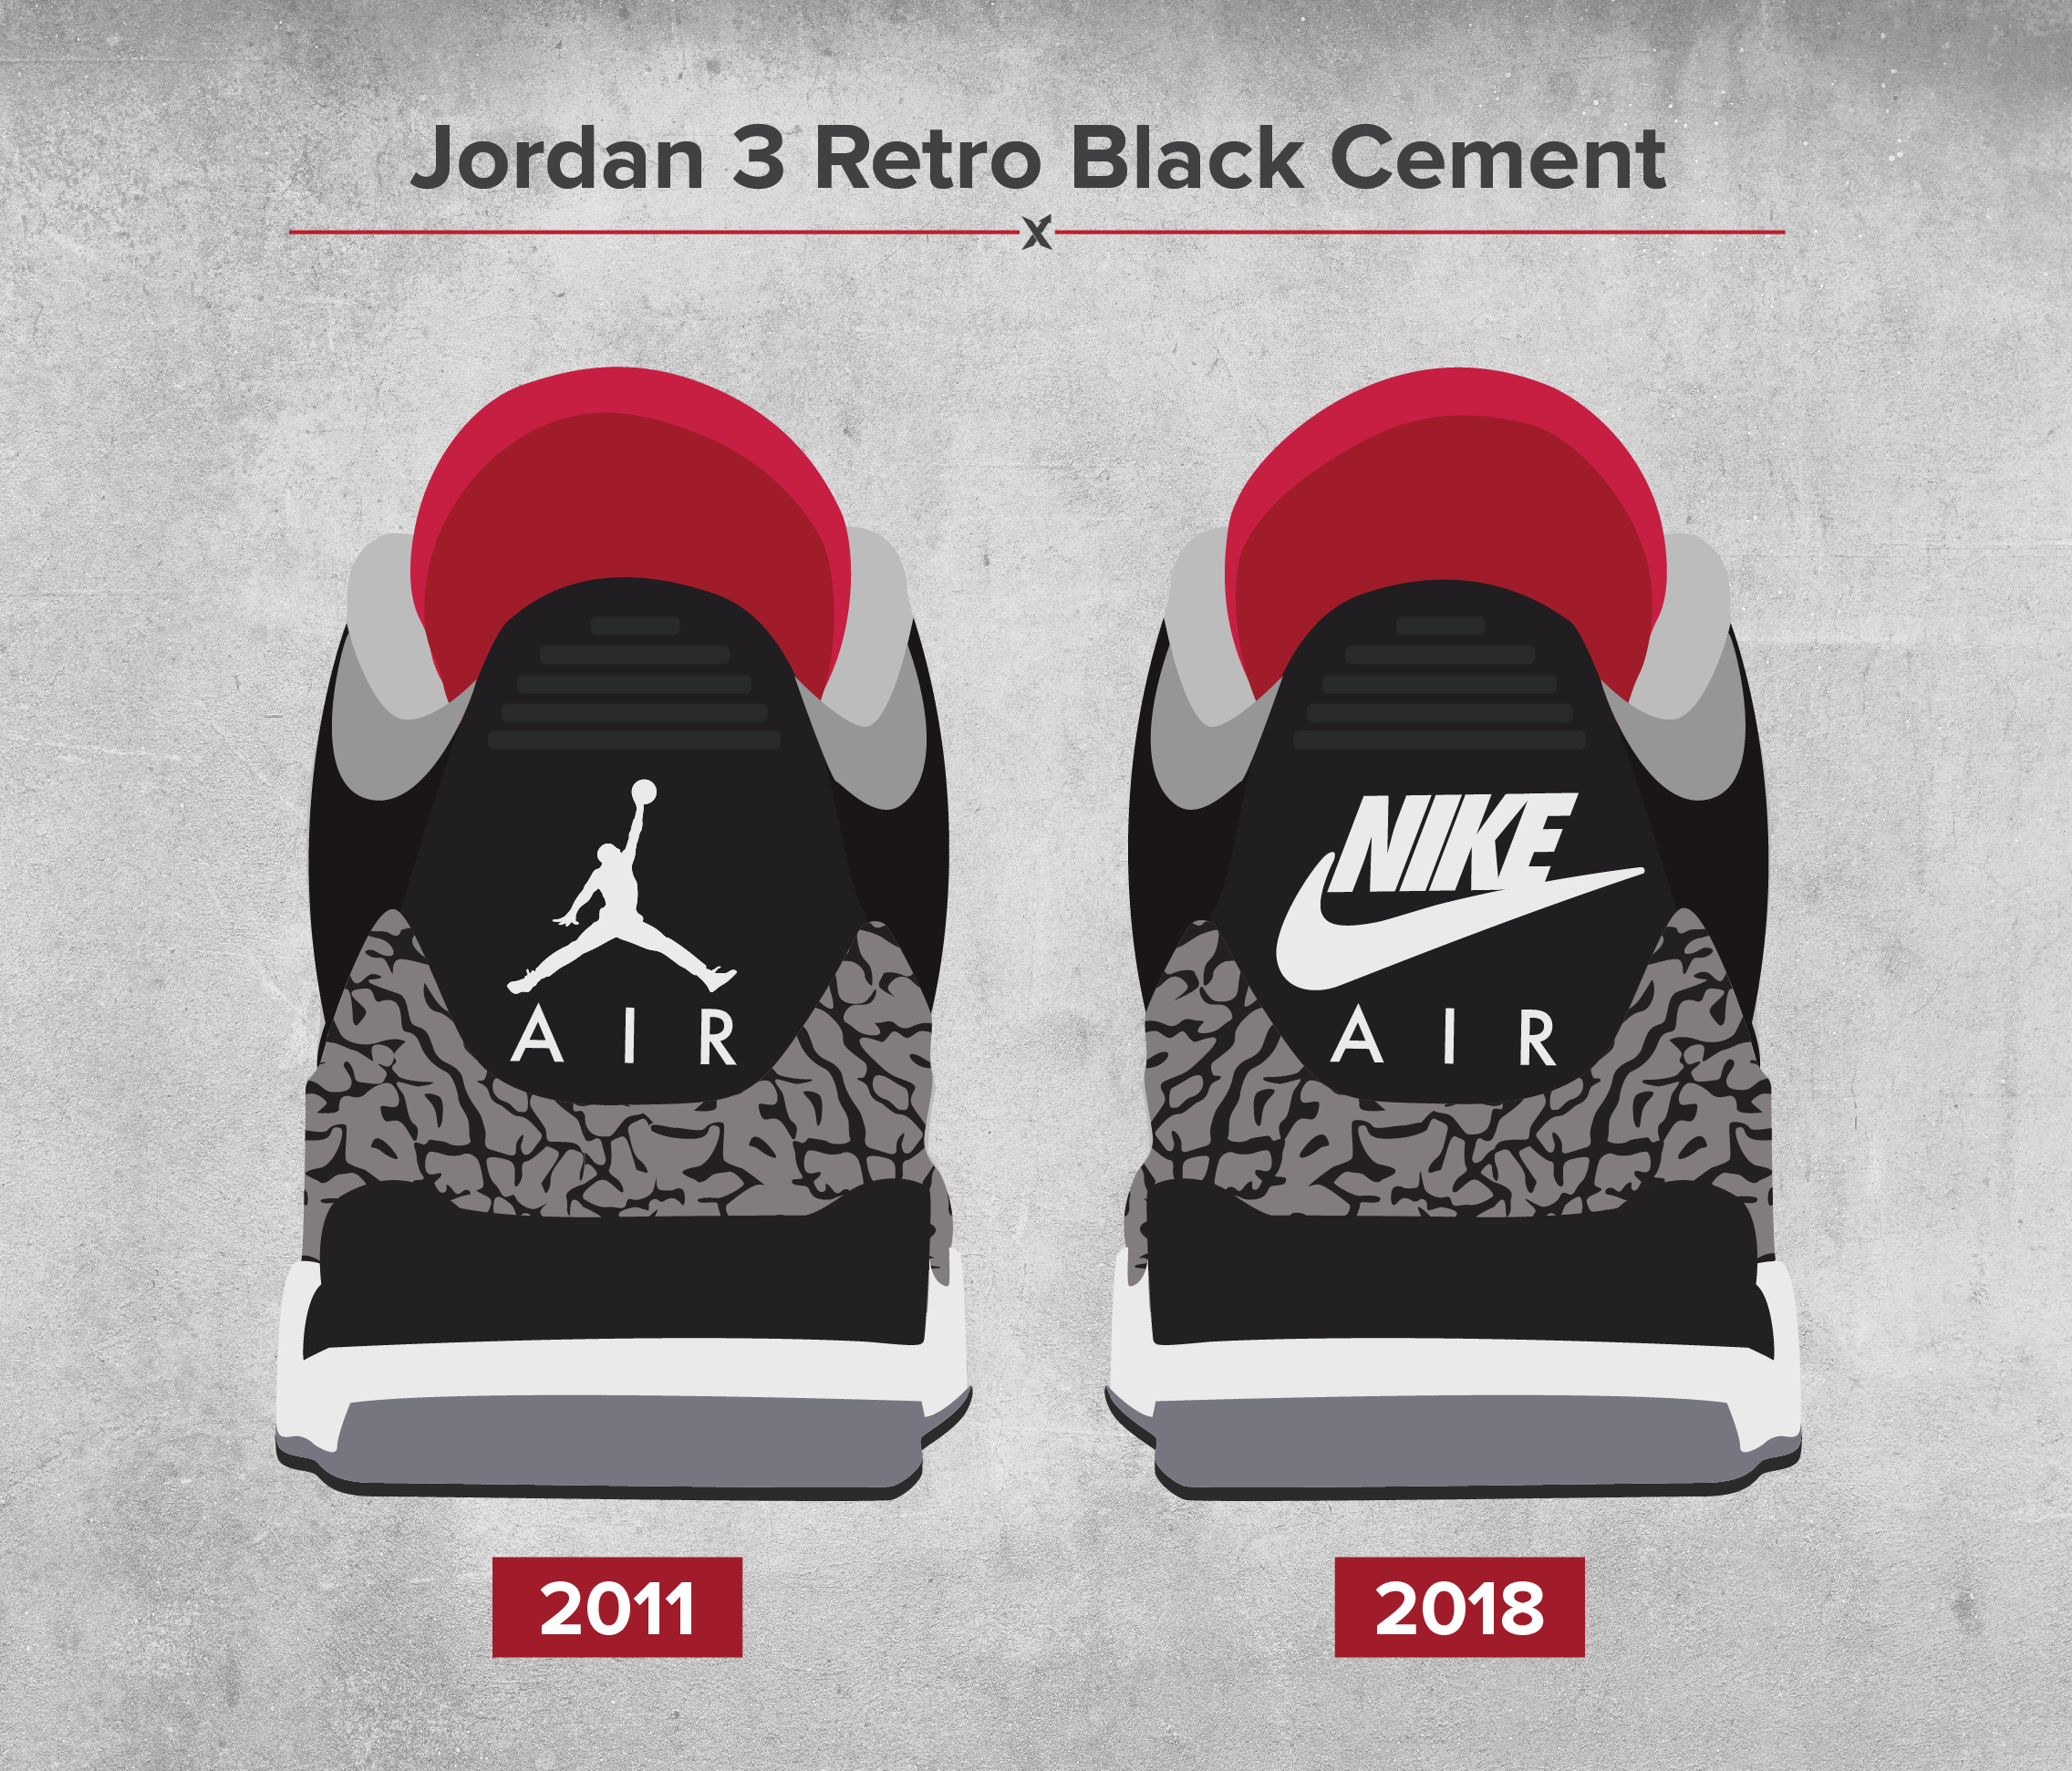 newest 7ae54 f02b2 The 2018 model mirrors the 1988 original in nearly all other aesthetic  dimensions- from the black cement colorway to the elephant print toe front.